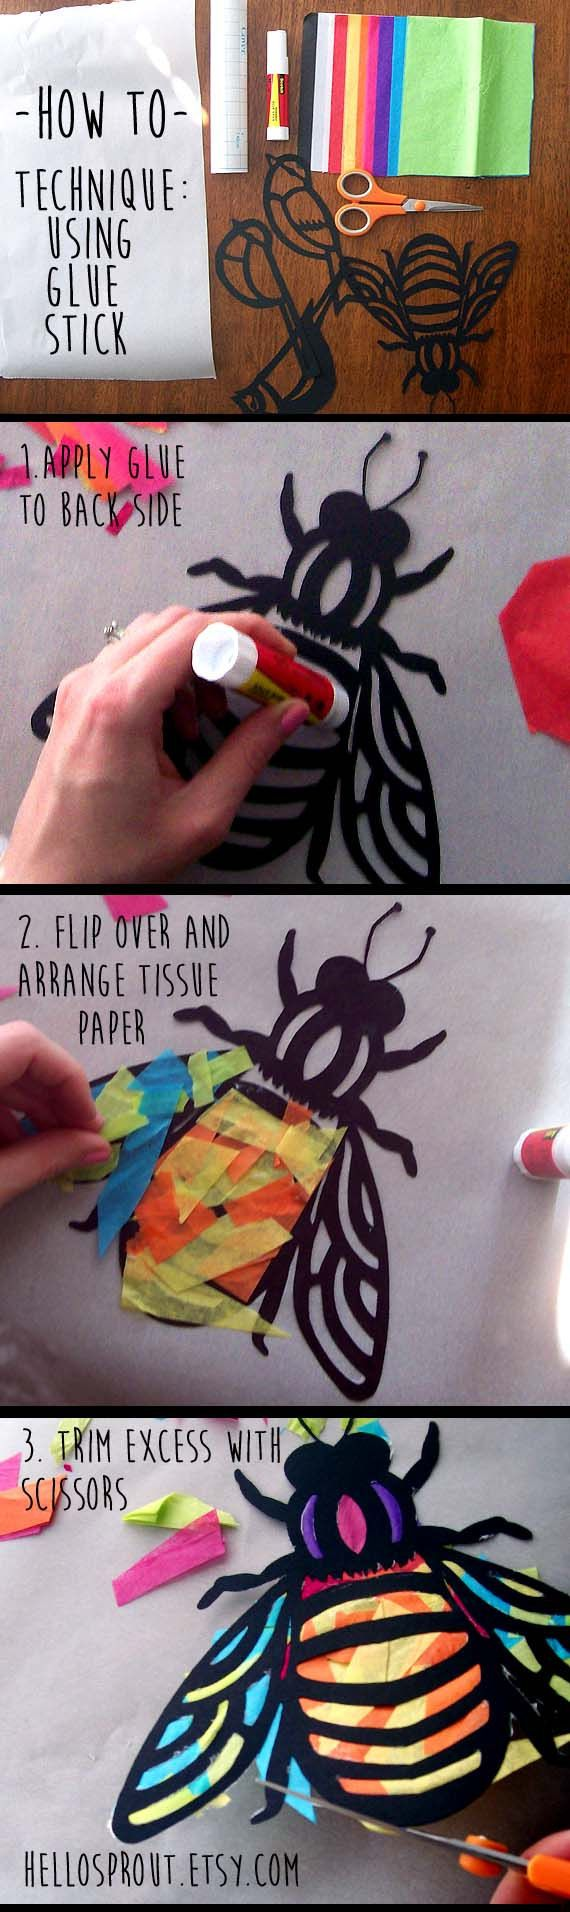 best creativo images on pinterest bookbinding product design